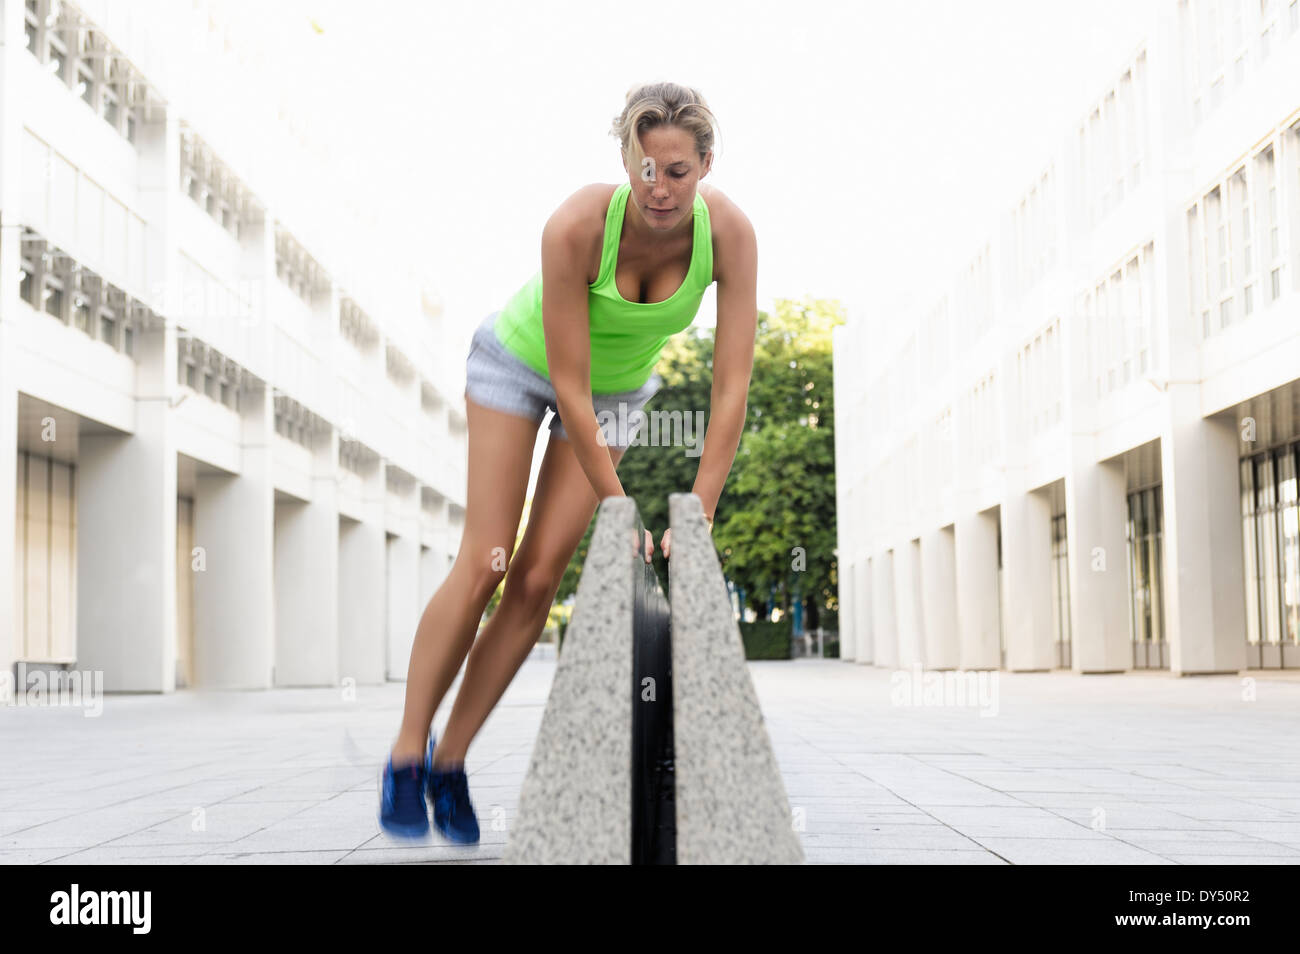 Young woman jumping over divider - Stock Image